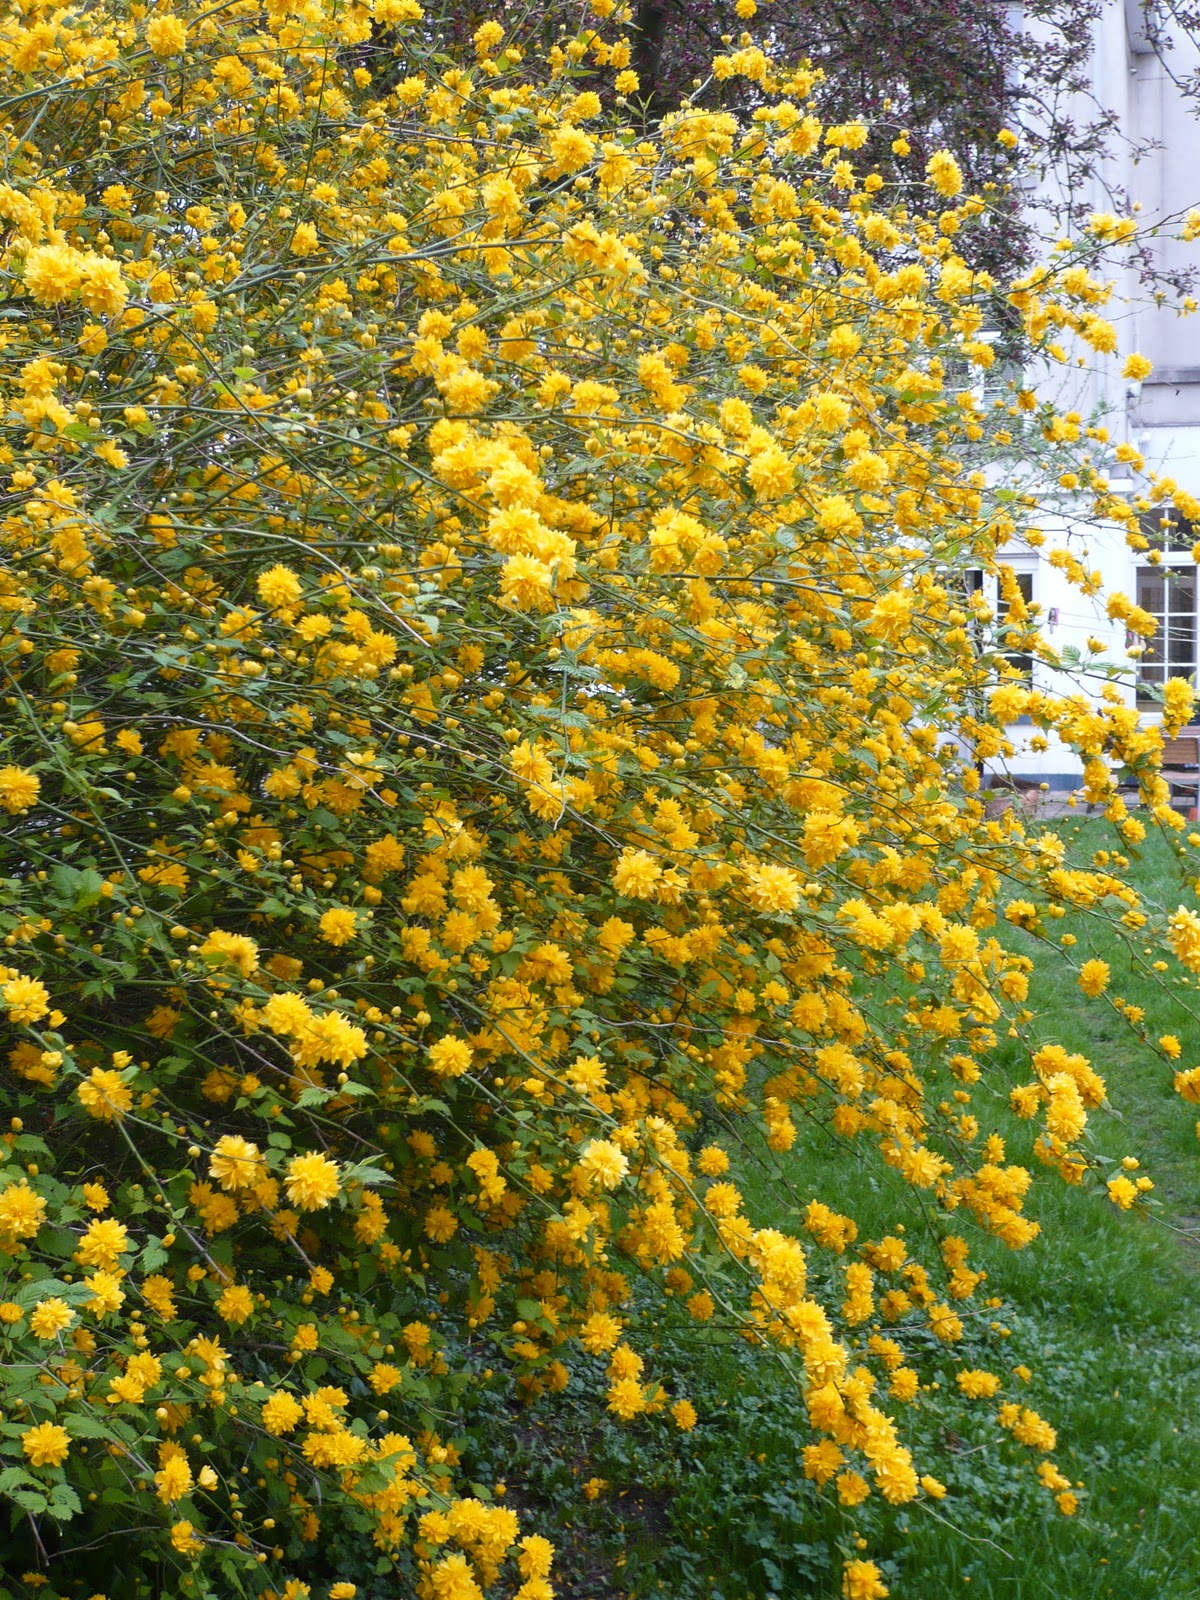 Stitches etc.: Pompom bush - kerria japonica